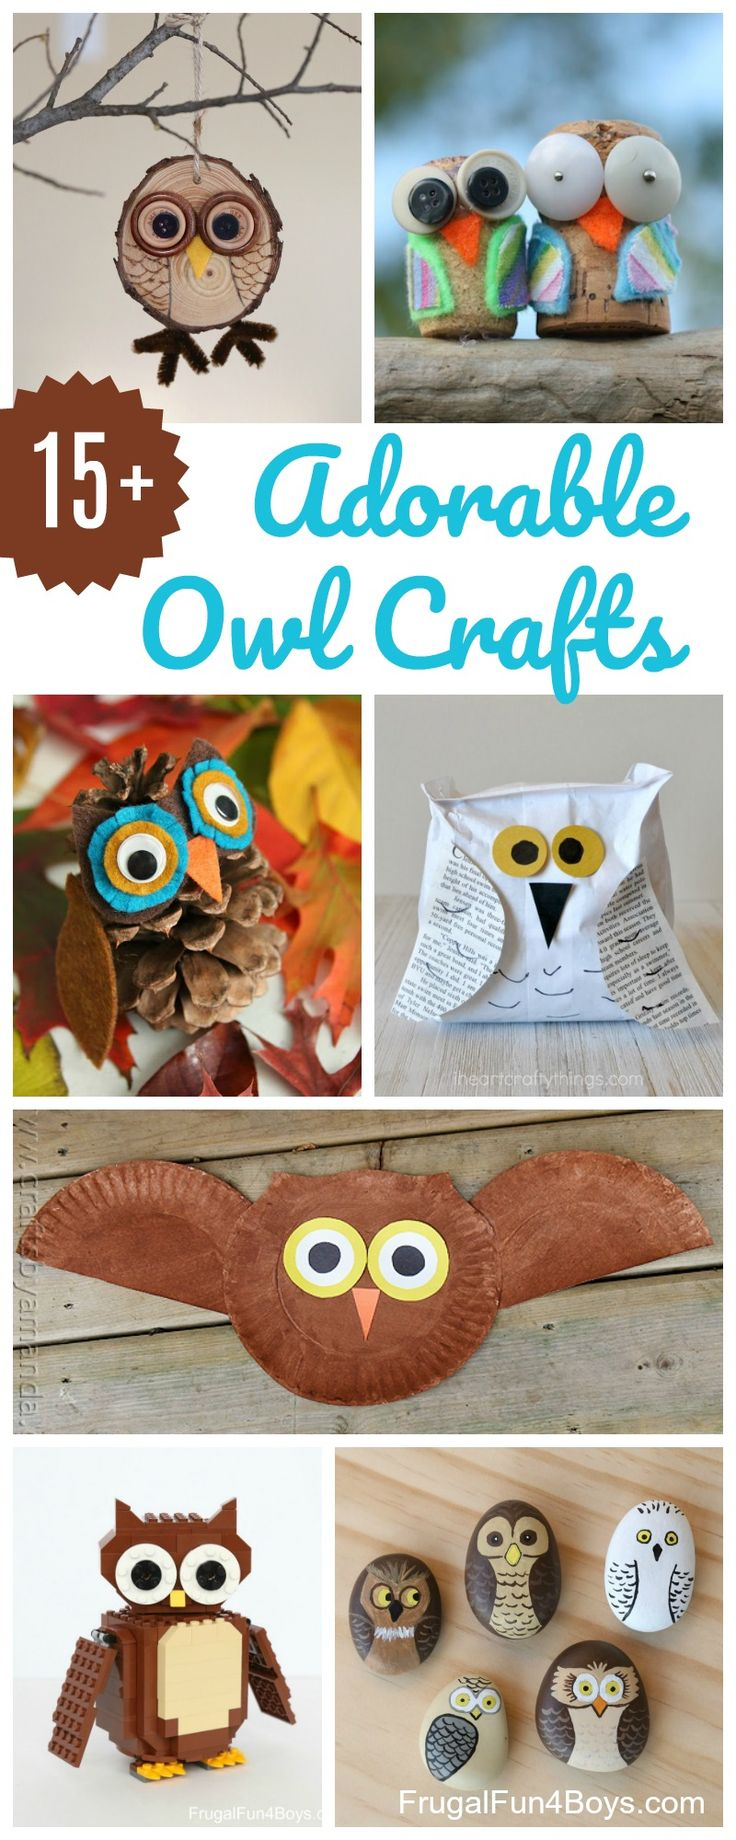 15+ Adorable Owl Crafts to Make with Kids - Painted rock owls, paper plate owls, wood slice owls, etc.